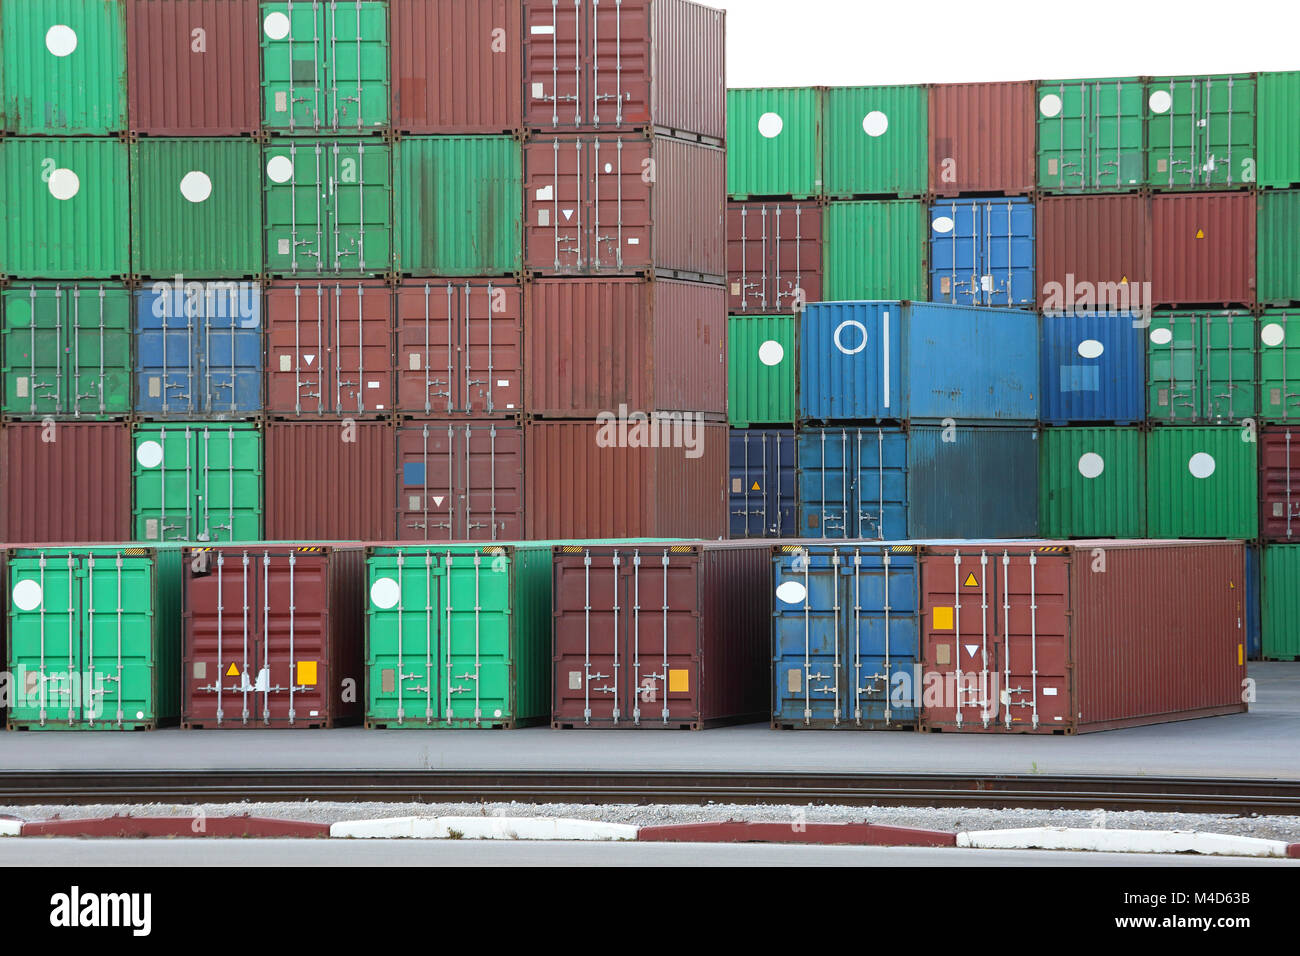 Intermodal Containers - Stock Image